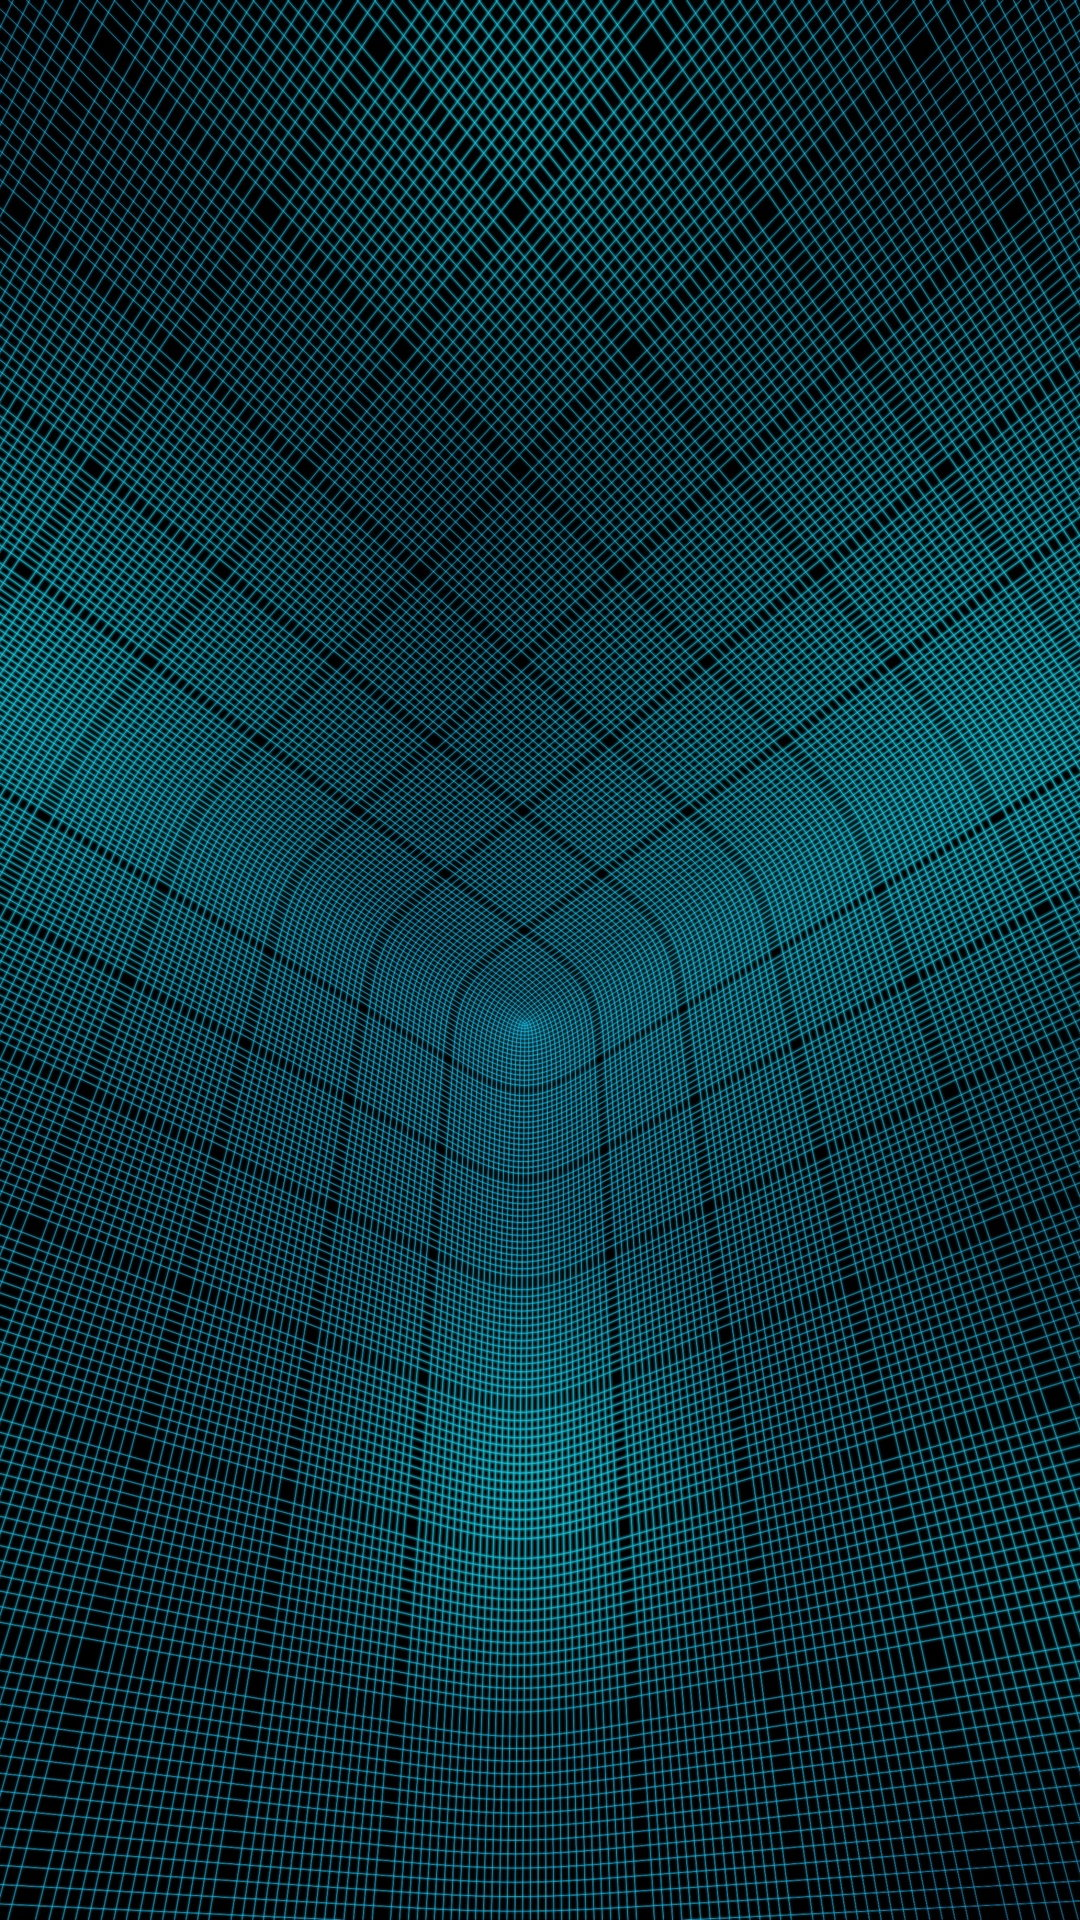 3D Mesh Optical Illusion HD Wallpaper   1080x1920 1080x1920